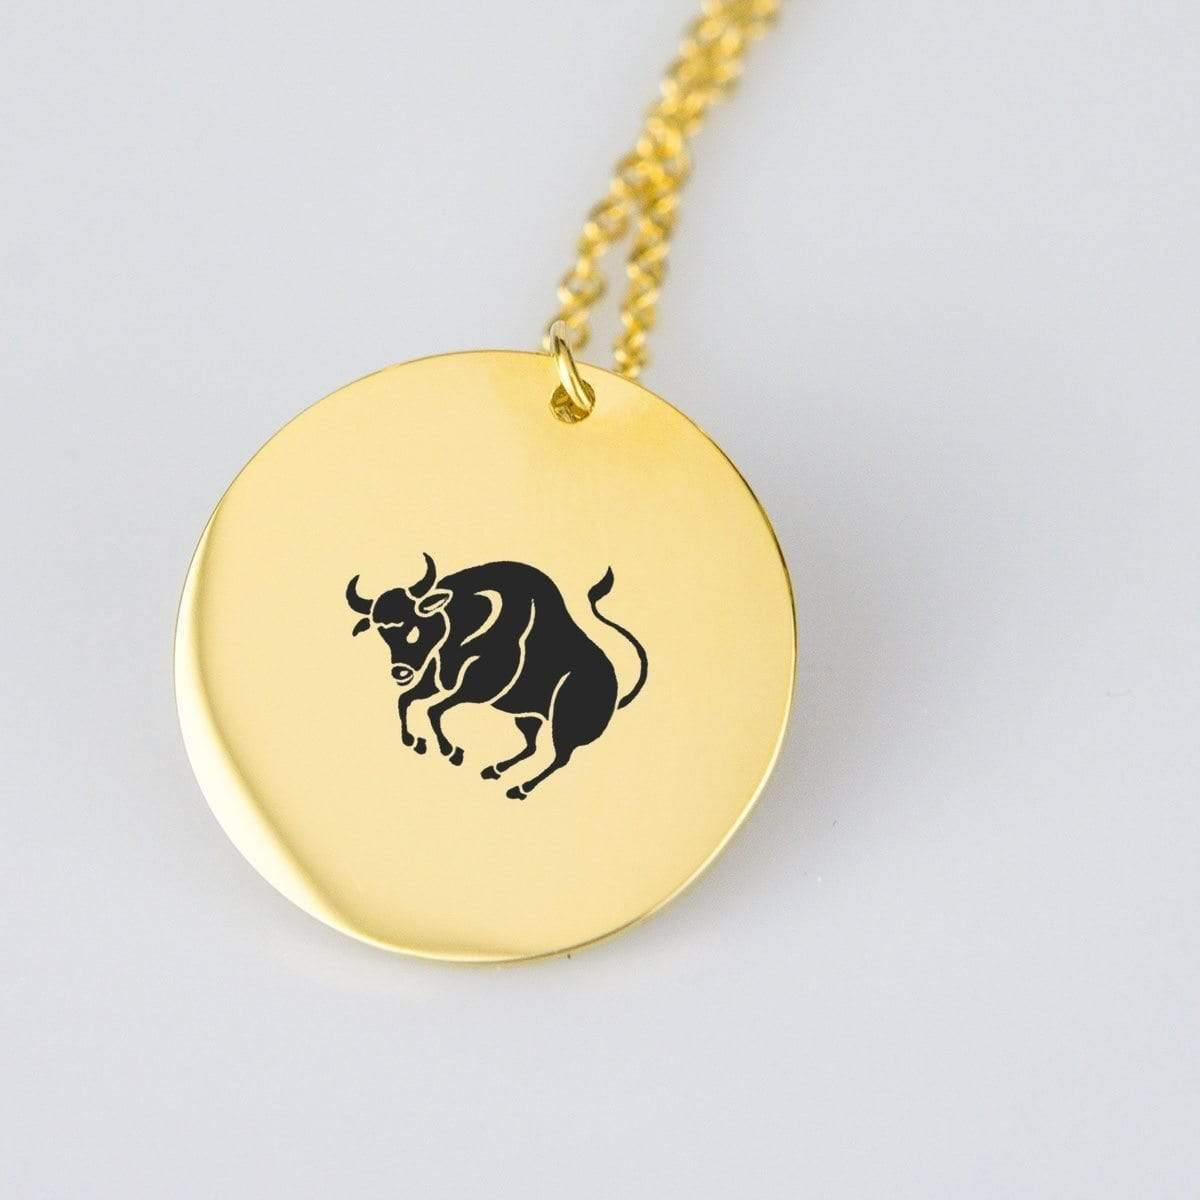 Beeoux pendant Gold Plated Stainless Steel Taurus Gold Pendant